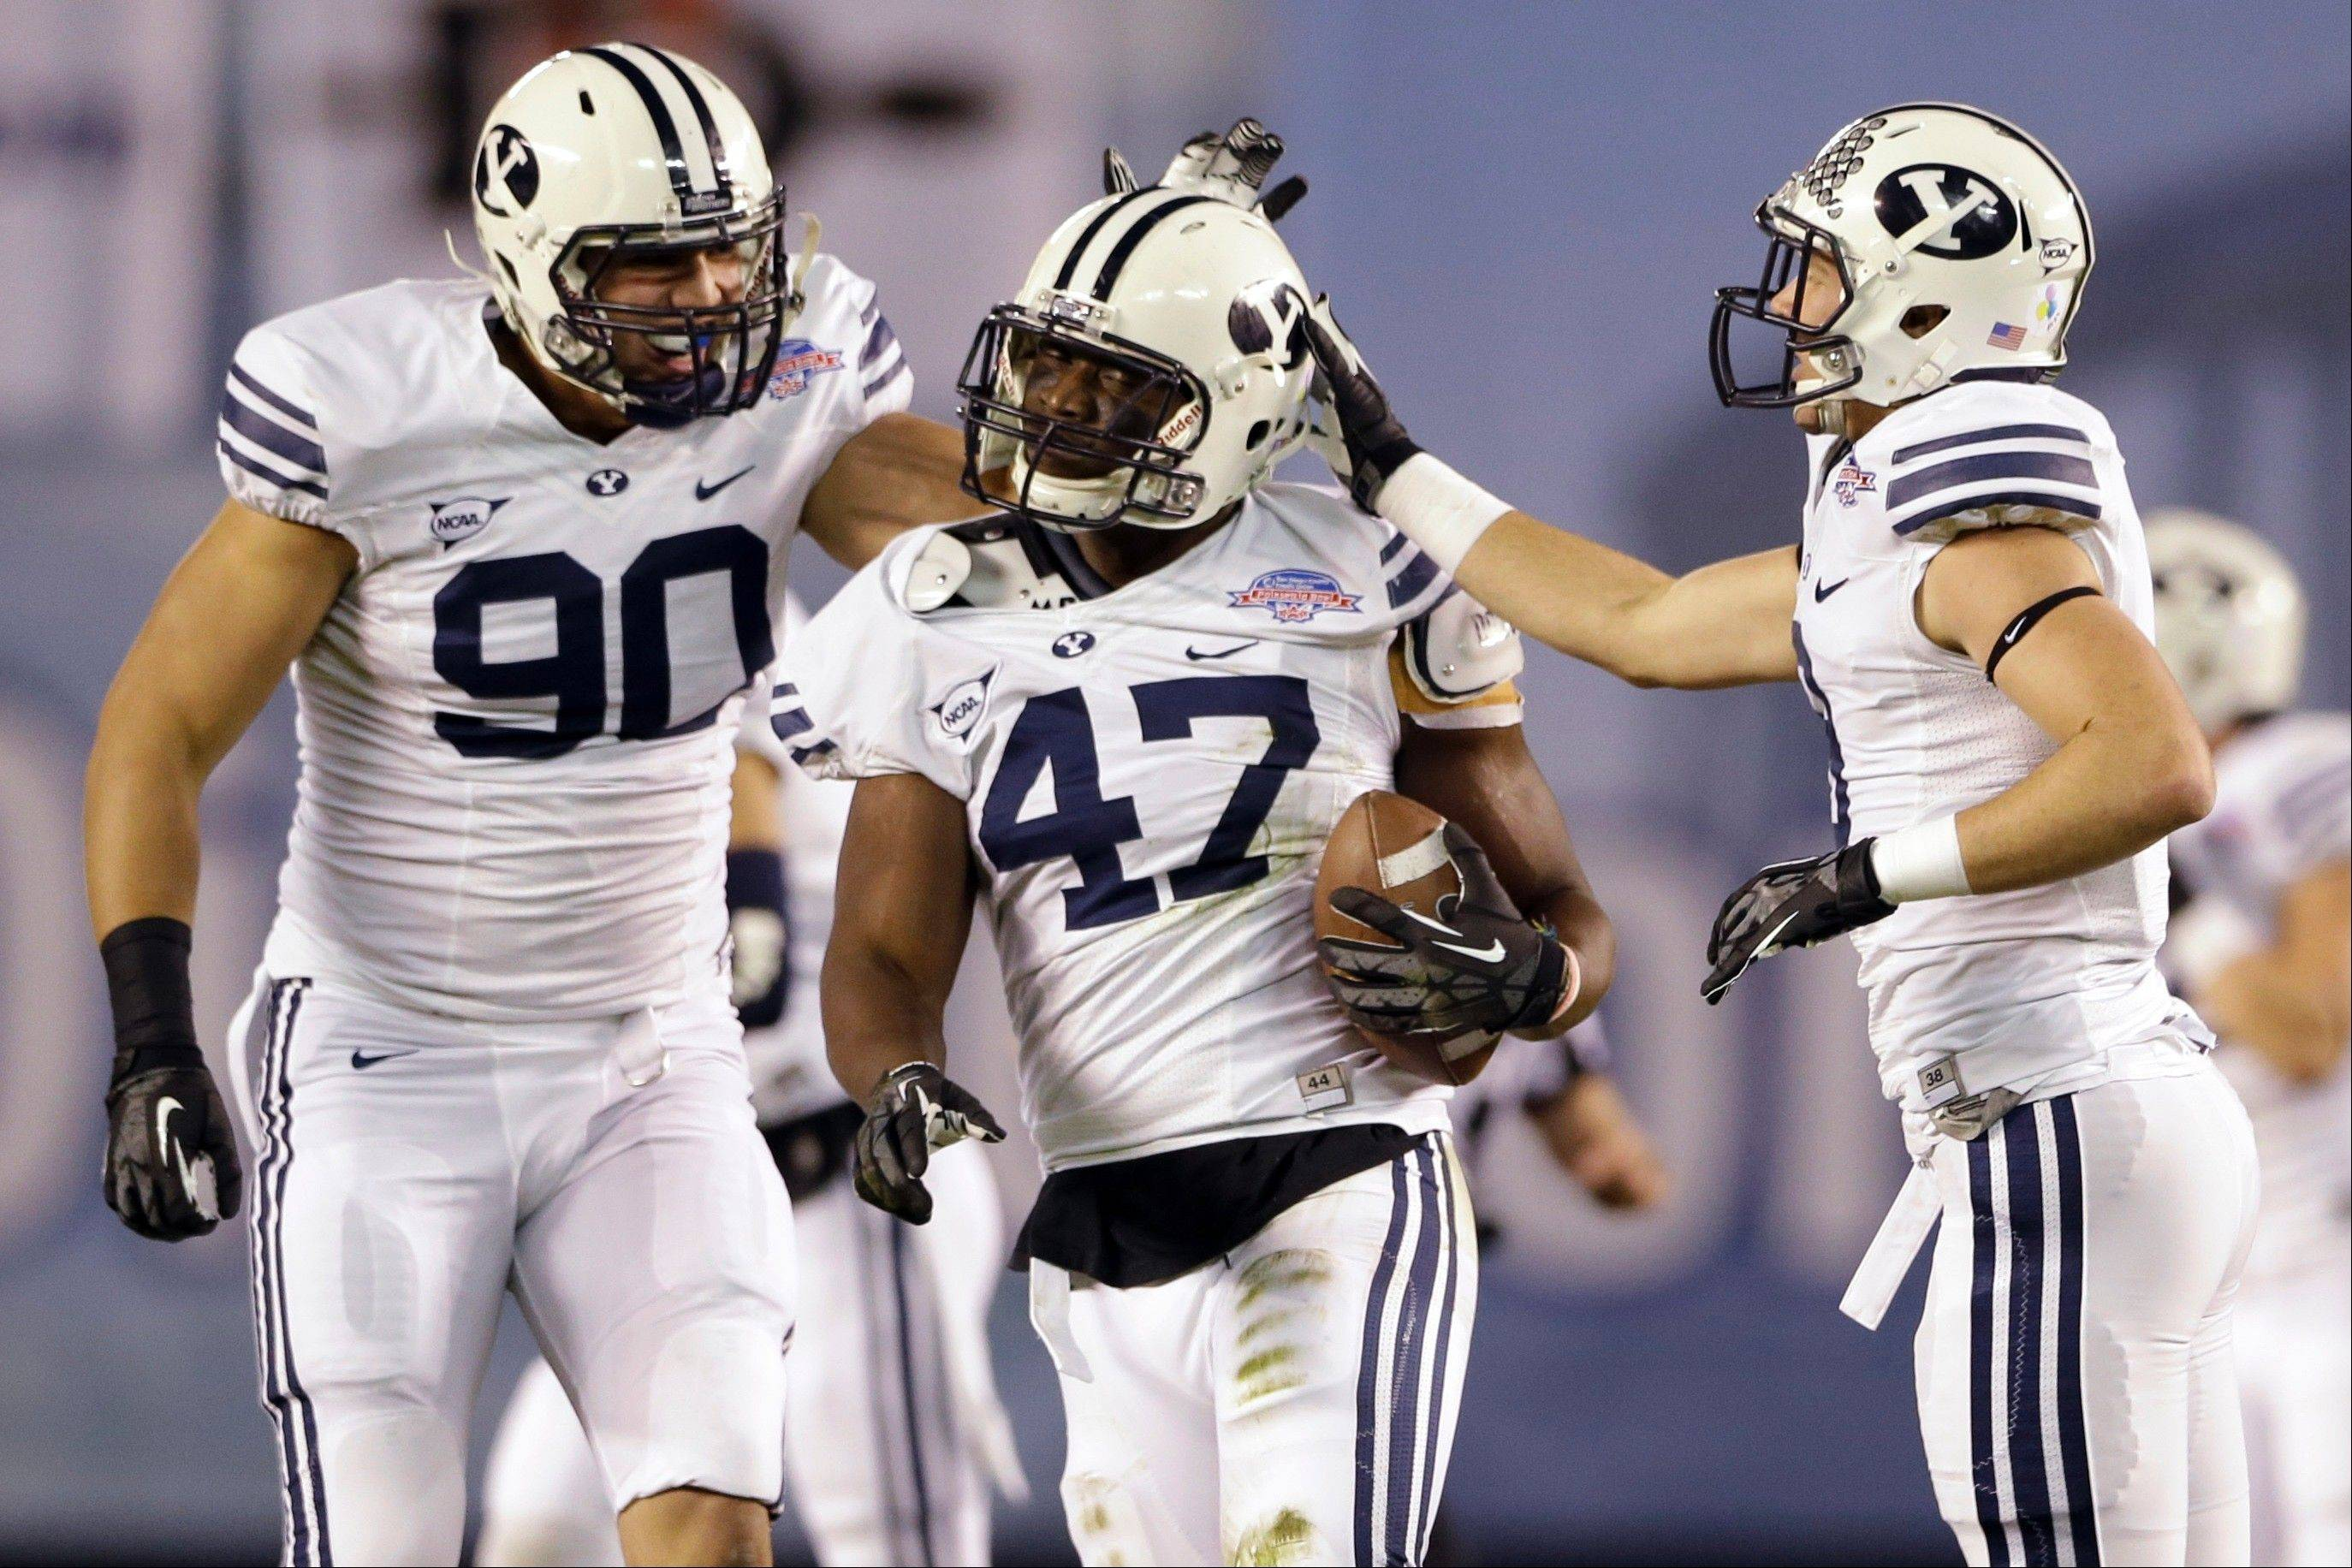 BYU's Ansah a freak of nature